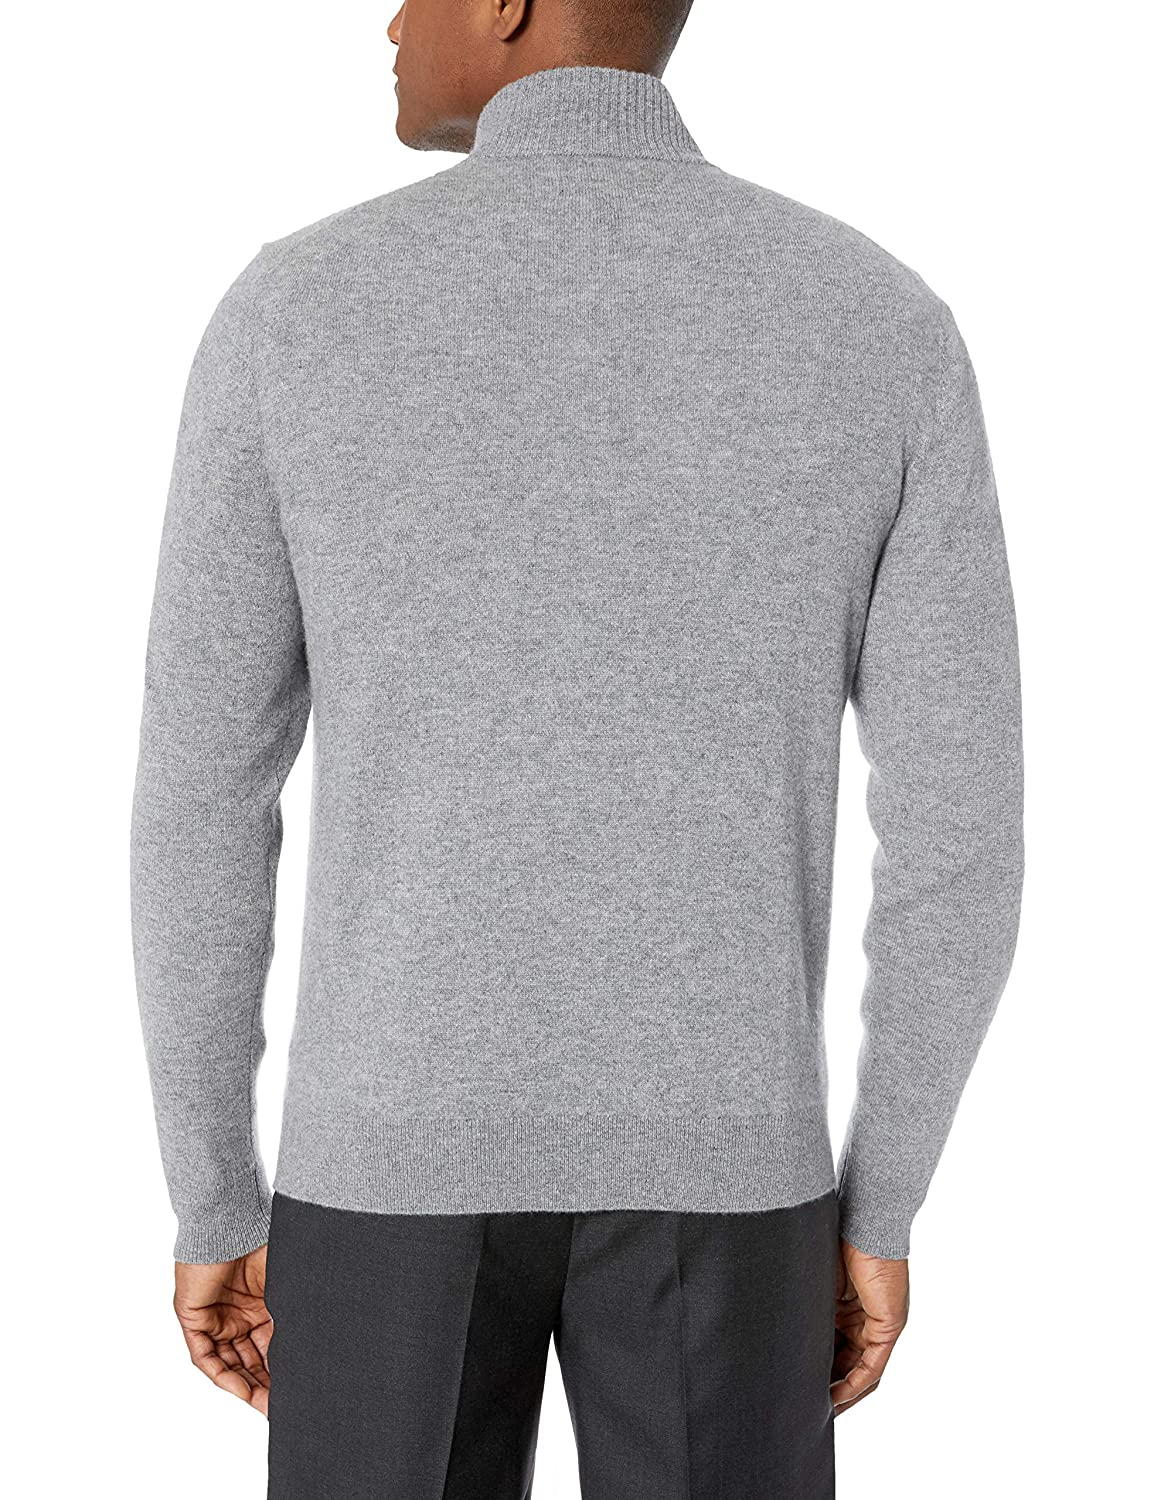 BUTTONED DOWN Mens 100/% Premium Cashmere Full-Zip Sweater MBD35004 Brand